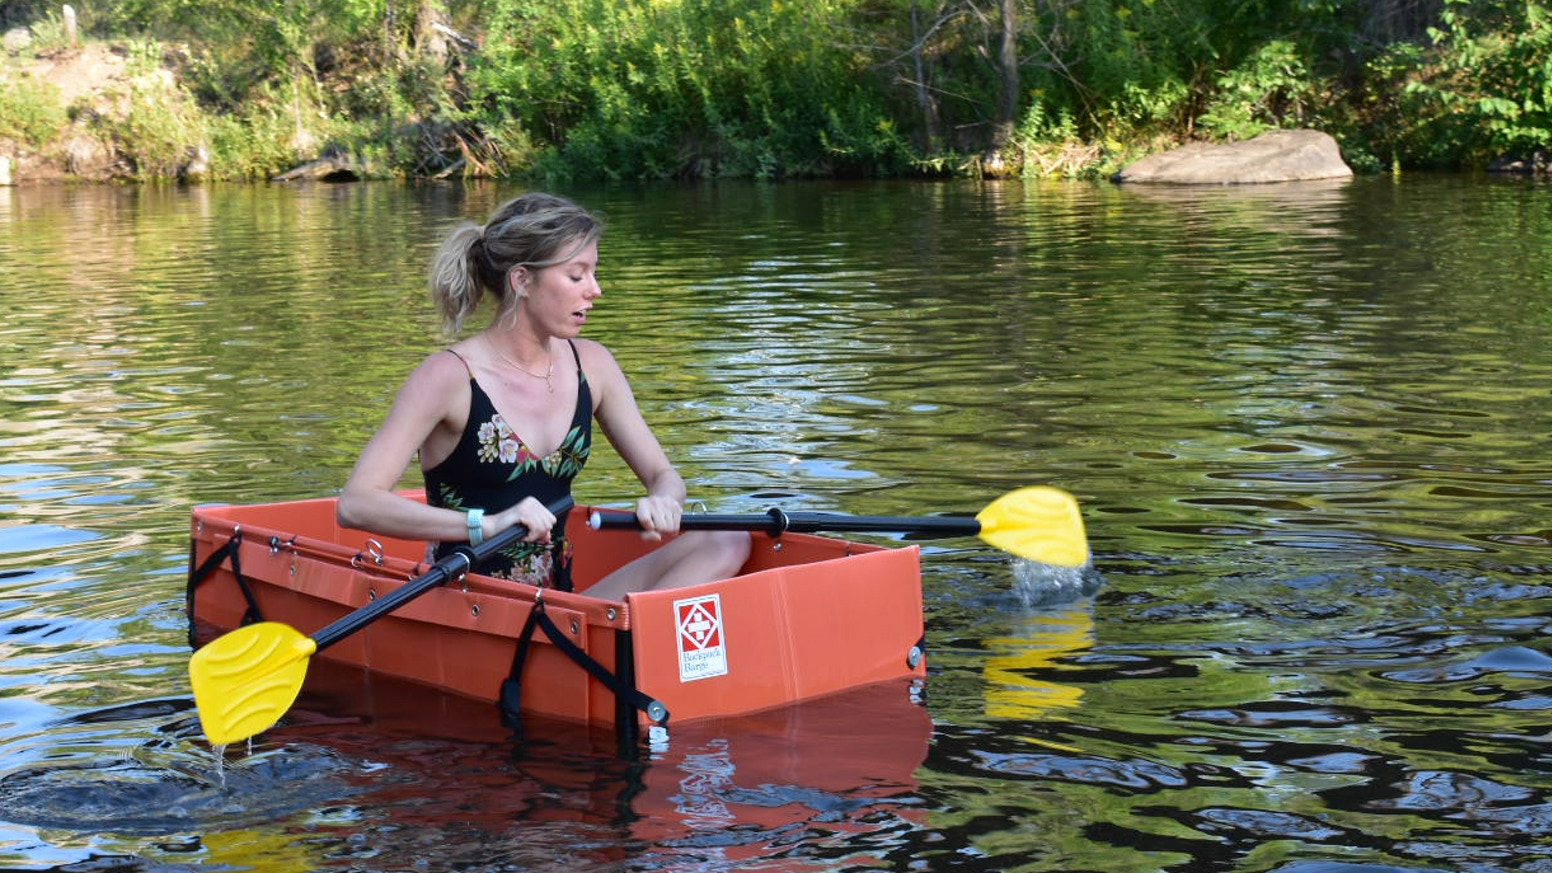 The most affordable folding boat for fun, fitness & safety